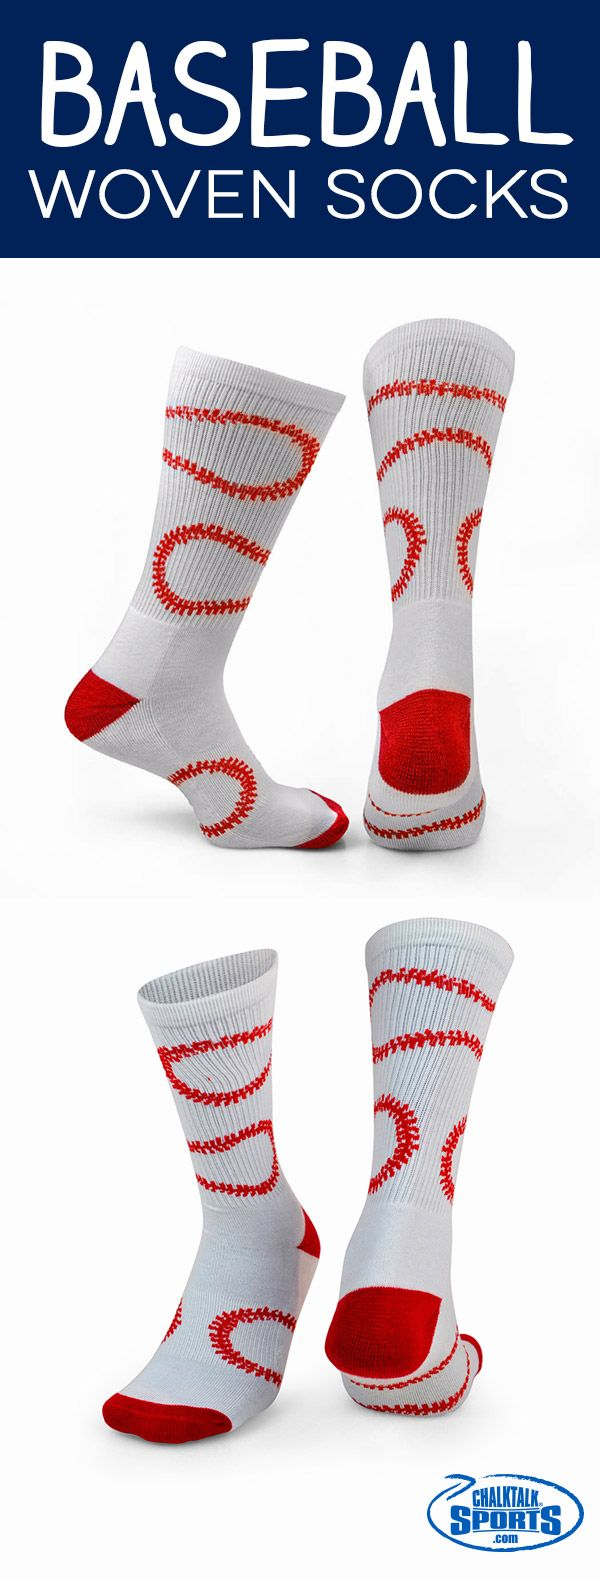 Show off your #baseball pride with a pair of our stylized stitches woven socks!